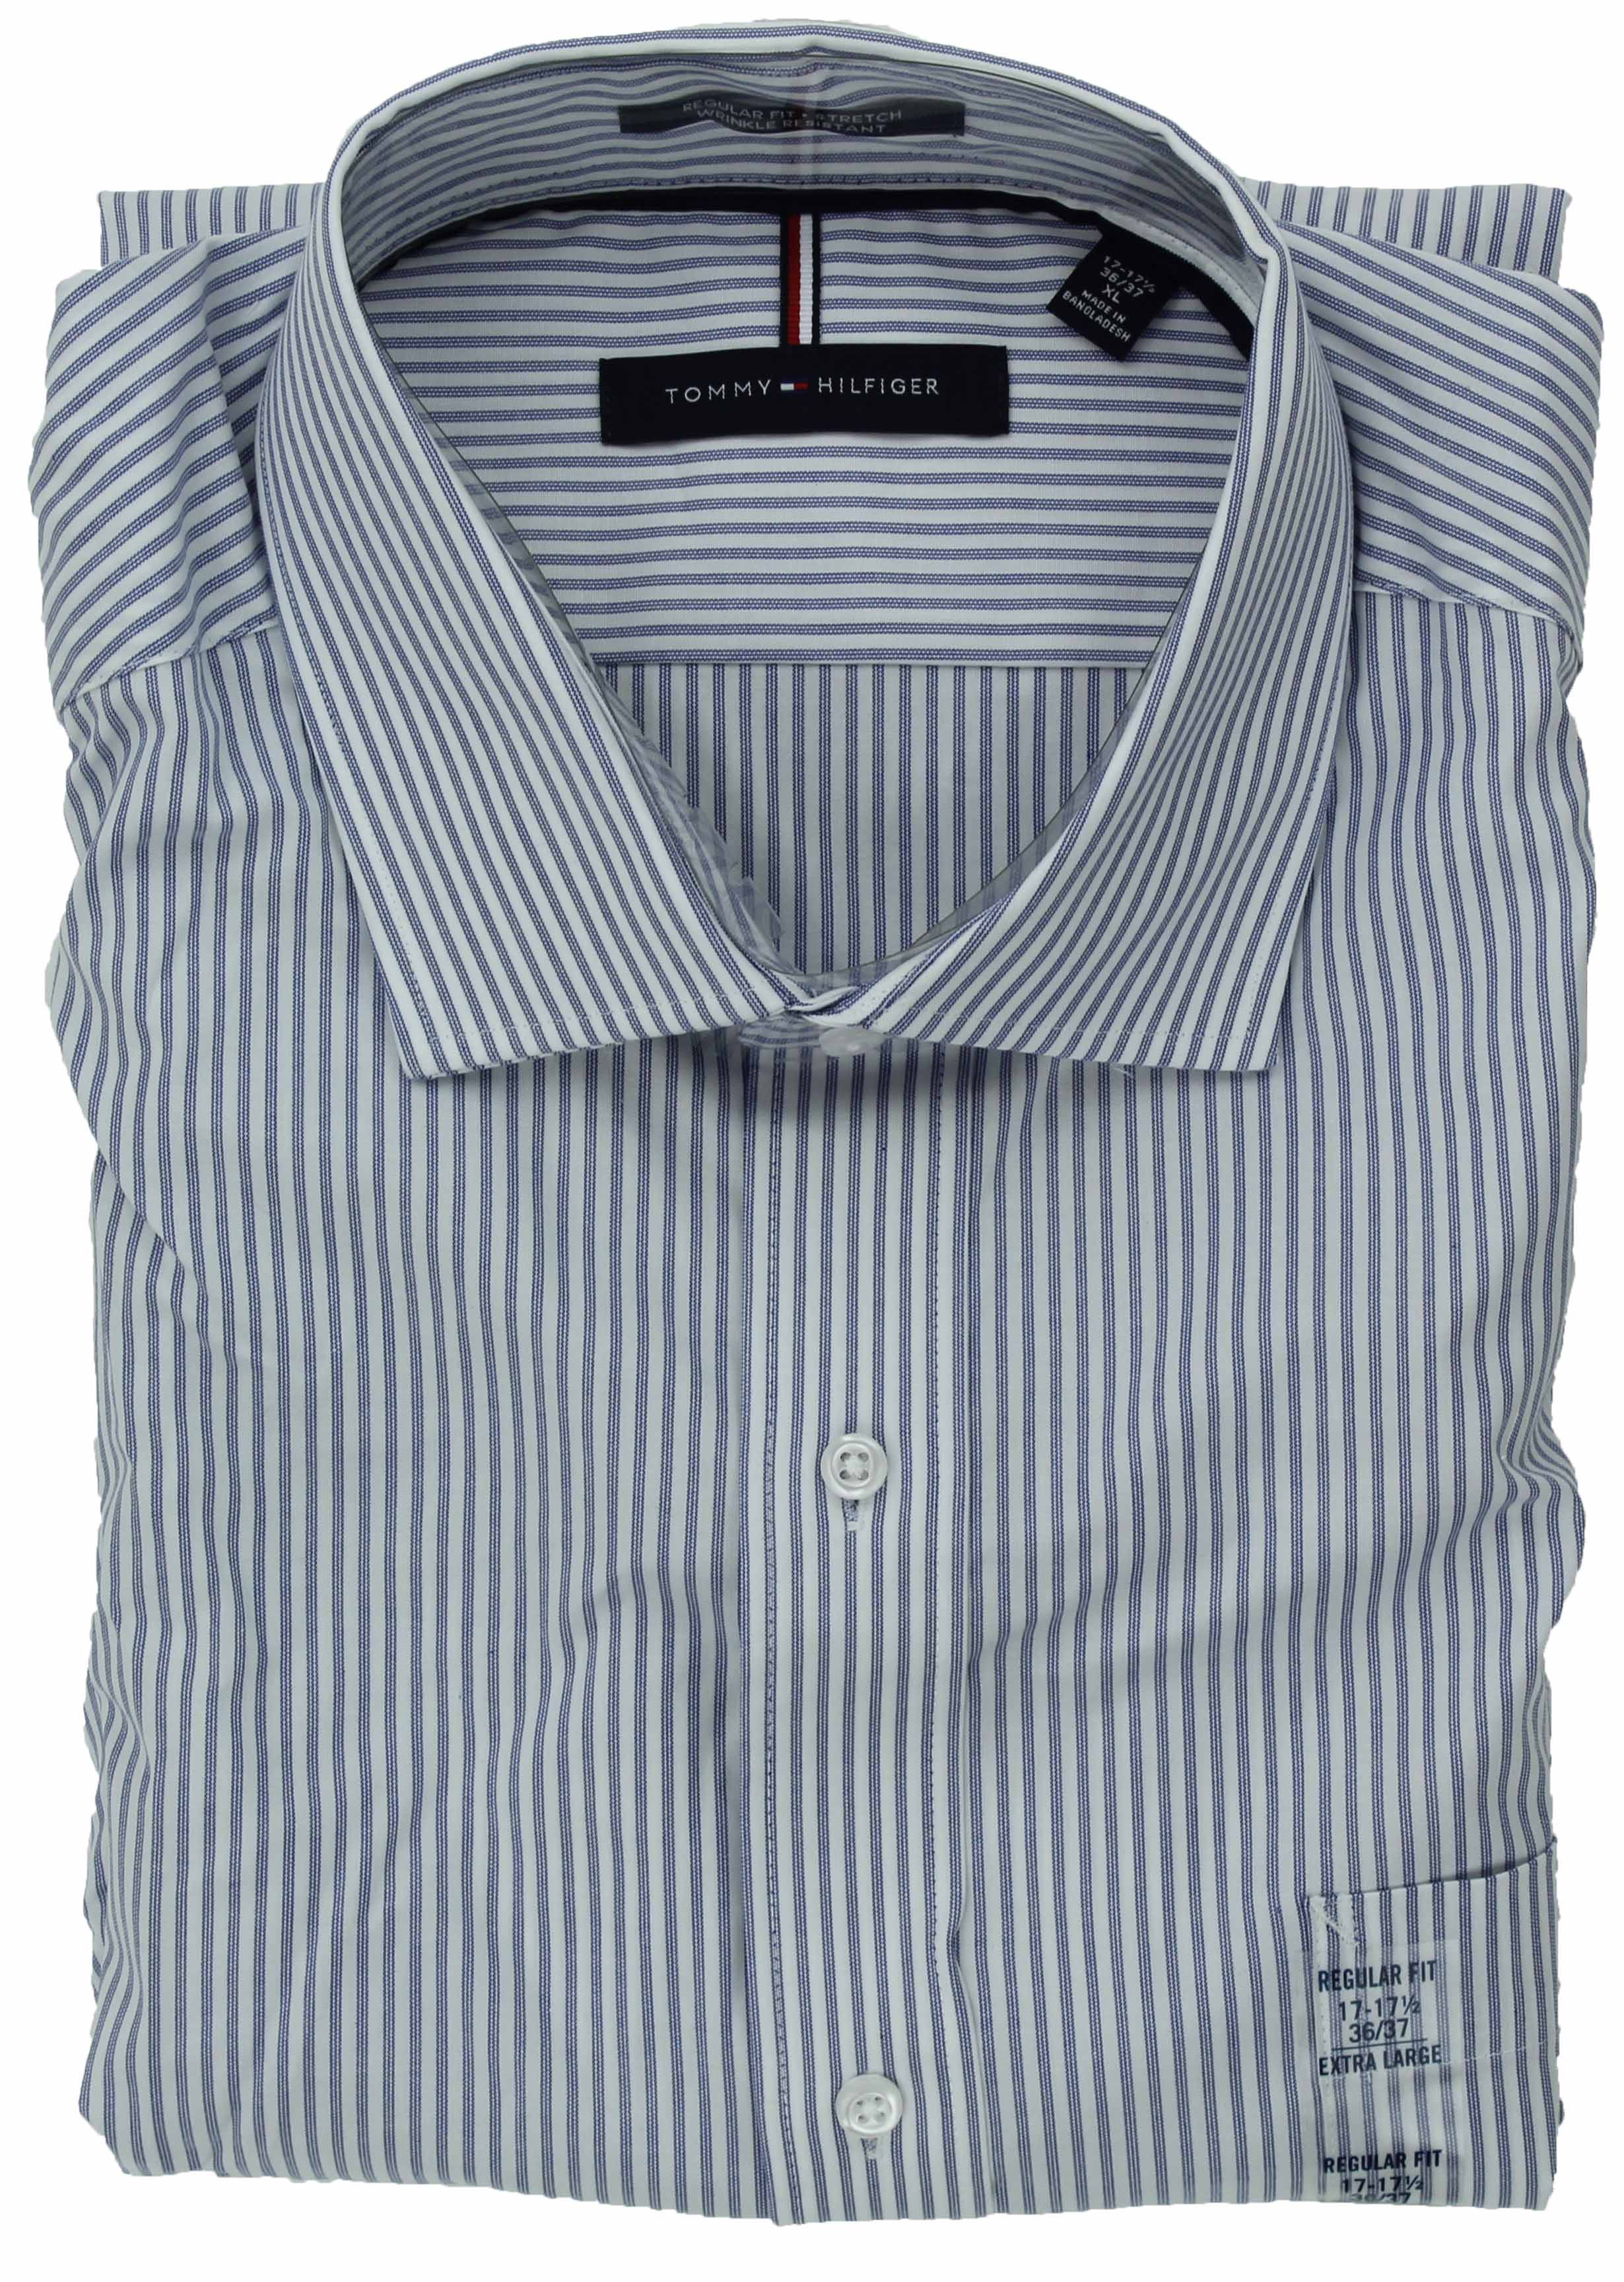 Tommy-Hilfiger-Mens-Long-Sleeve-Regular-Fit-Dress-Shirt miniature 32